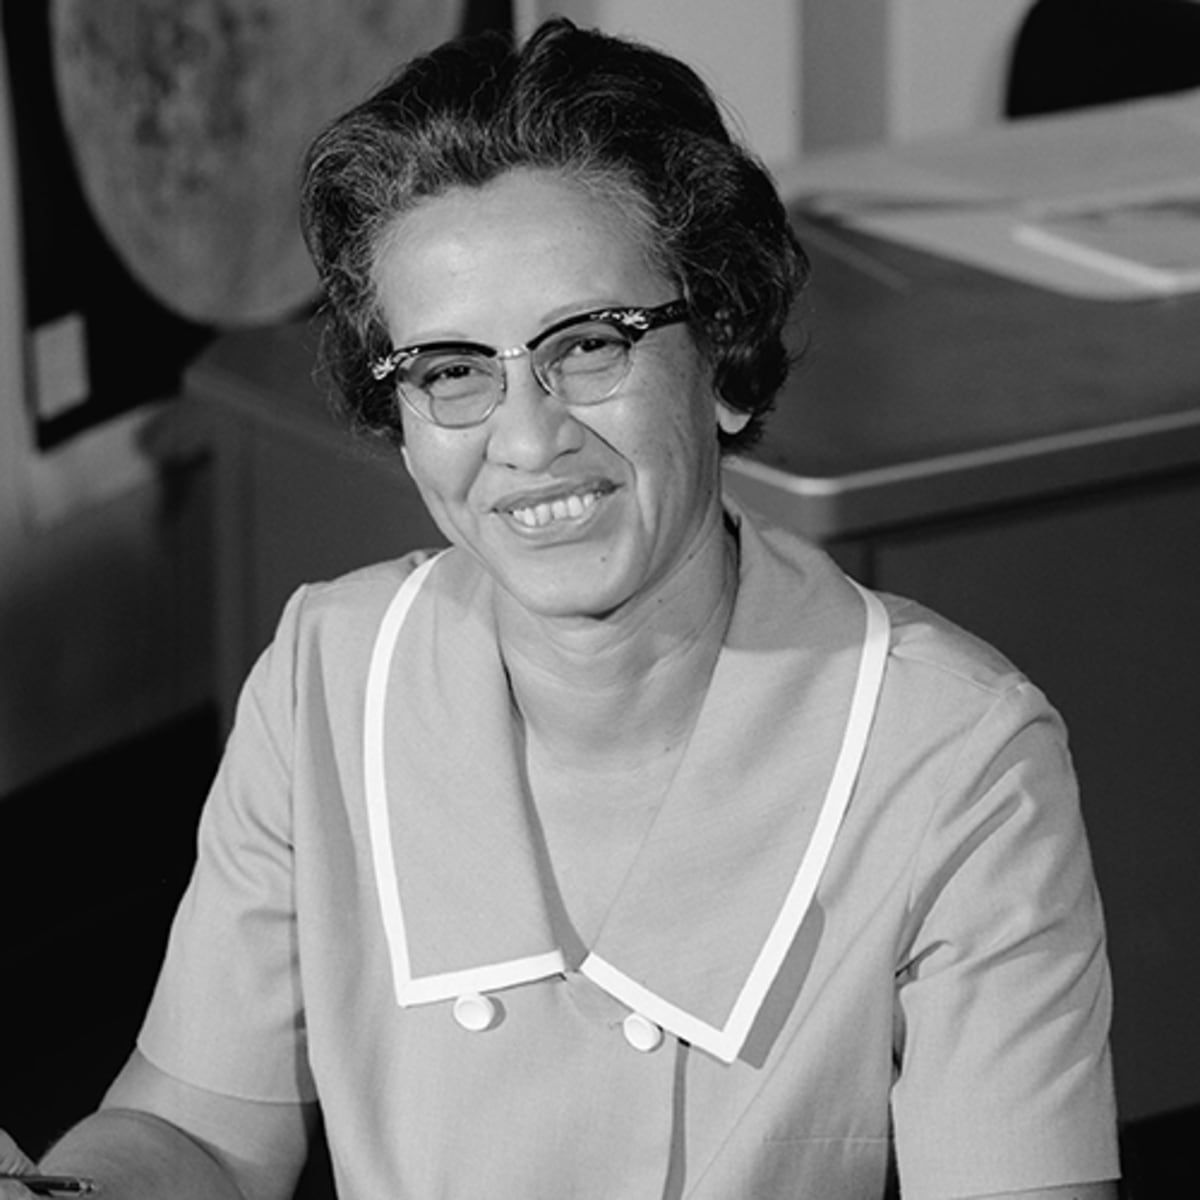 In this image, you can see the real Katherine Johnson at her desk at Langley Research Center in 1966.